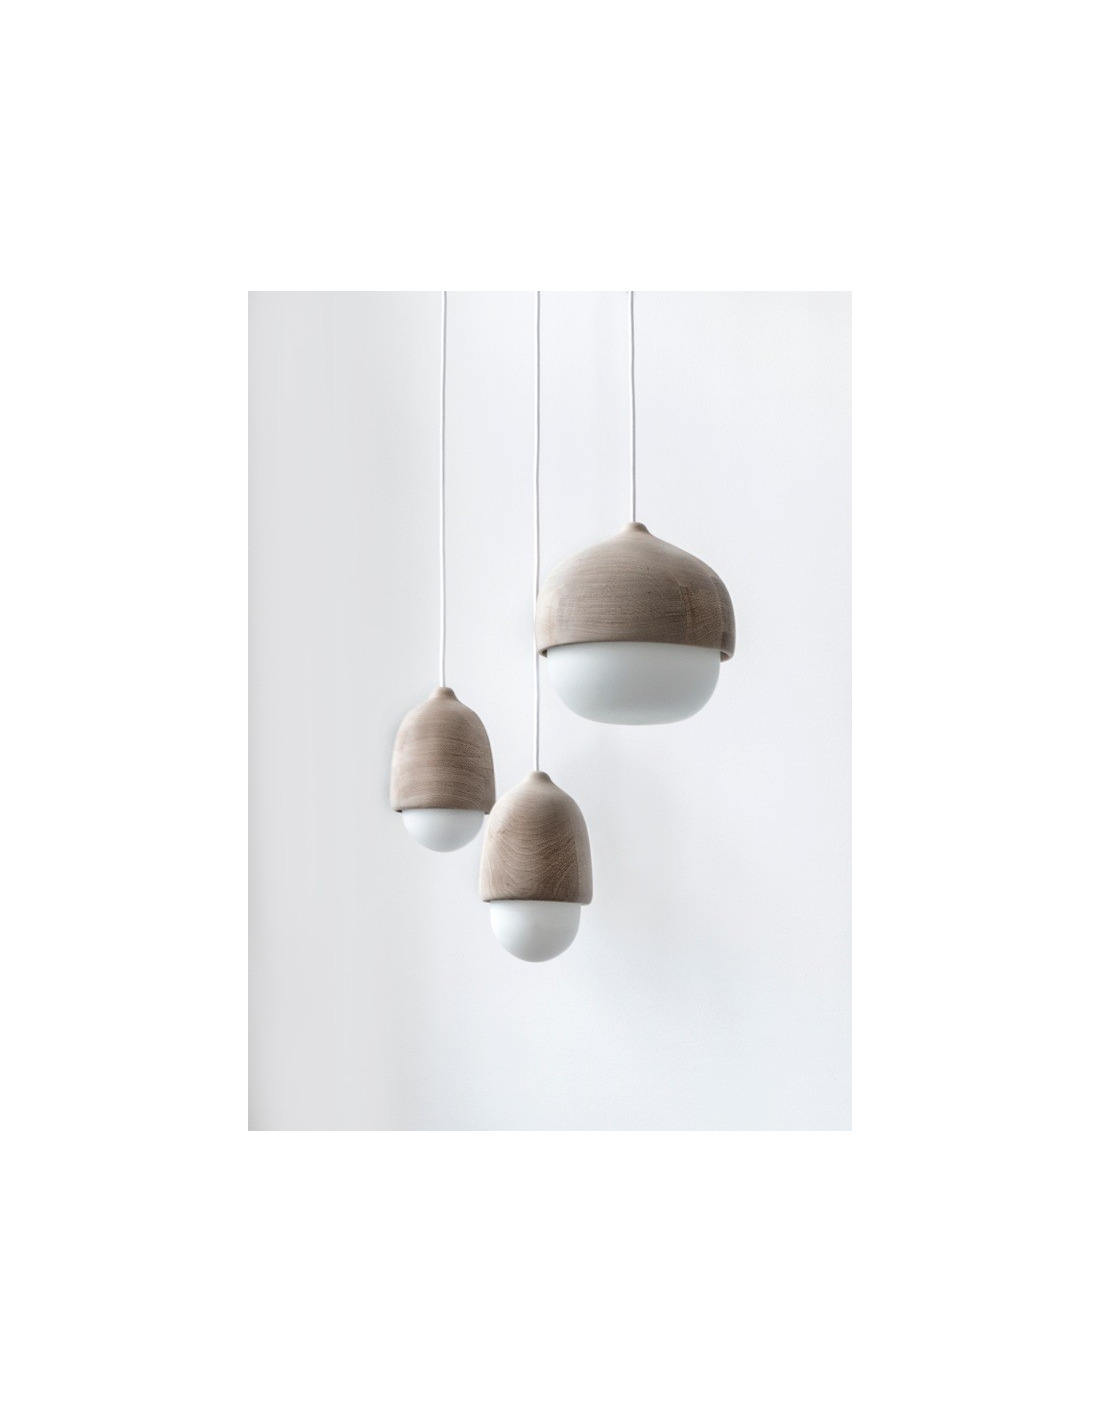 Suspension En Bois Et Verre Souffl 233 Terho Lamp M Au Design